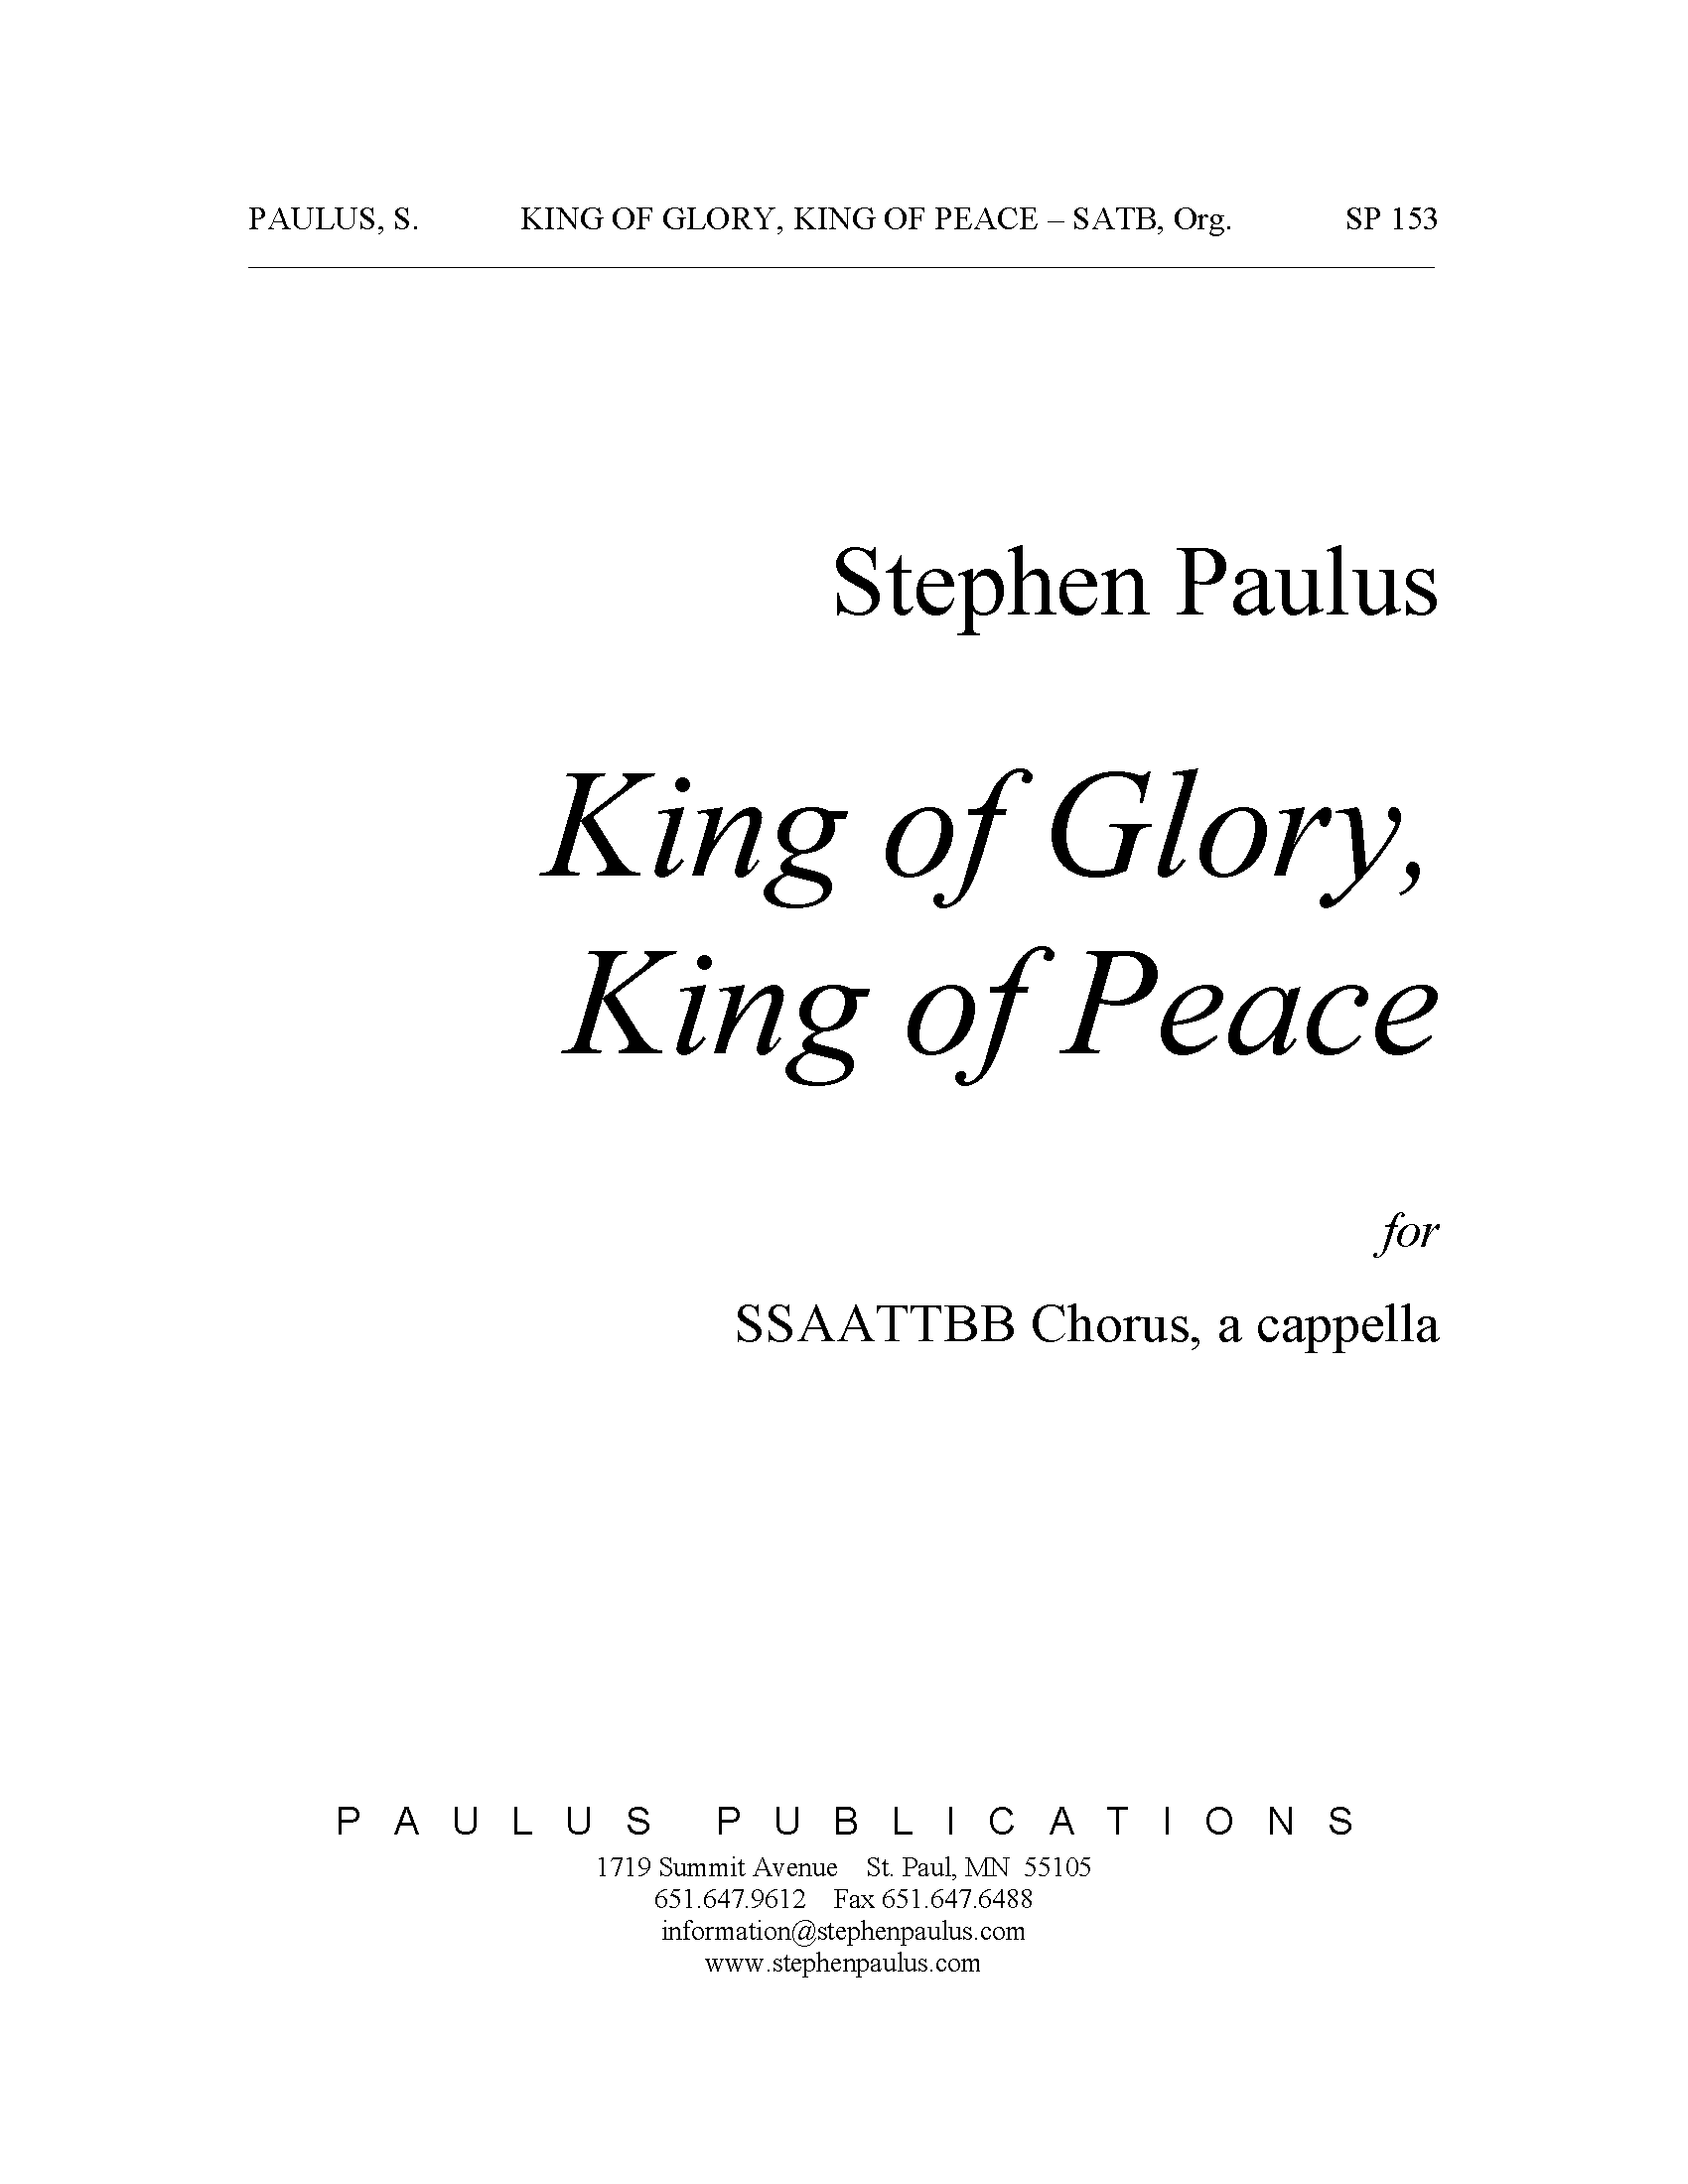 King of Glory, King of Peace for SSAATTBB Chorus, a cappella